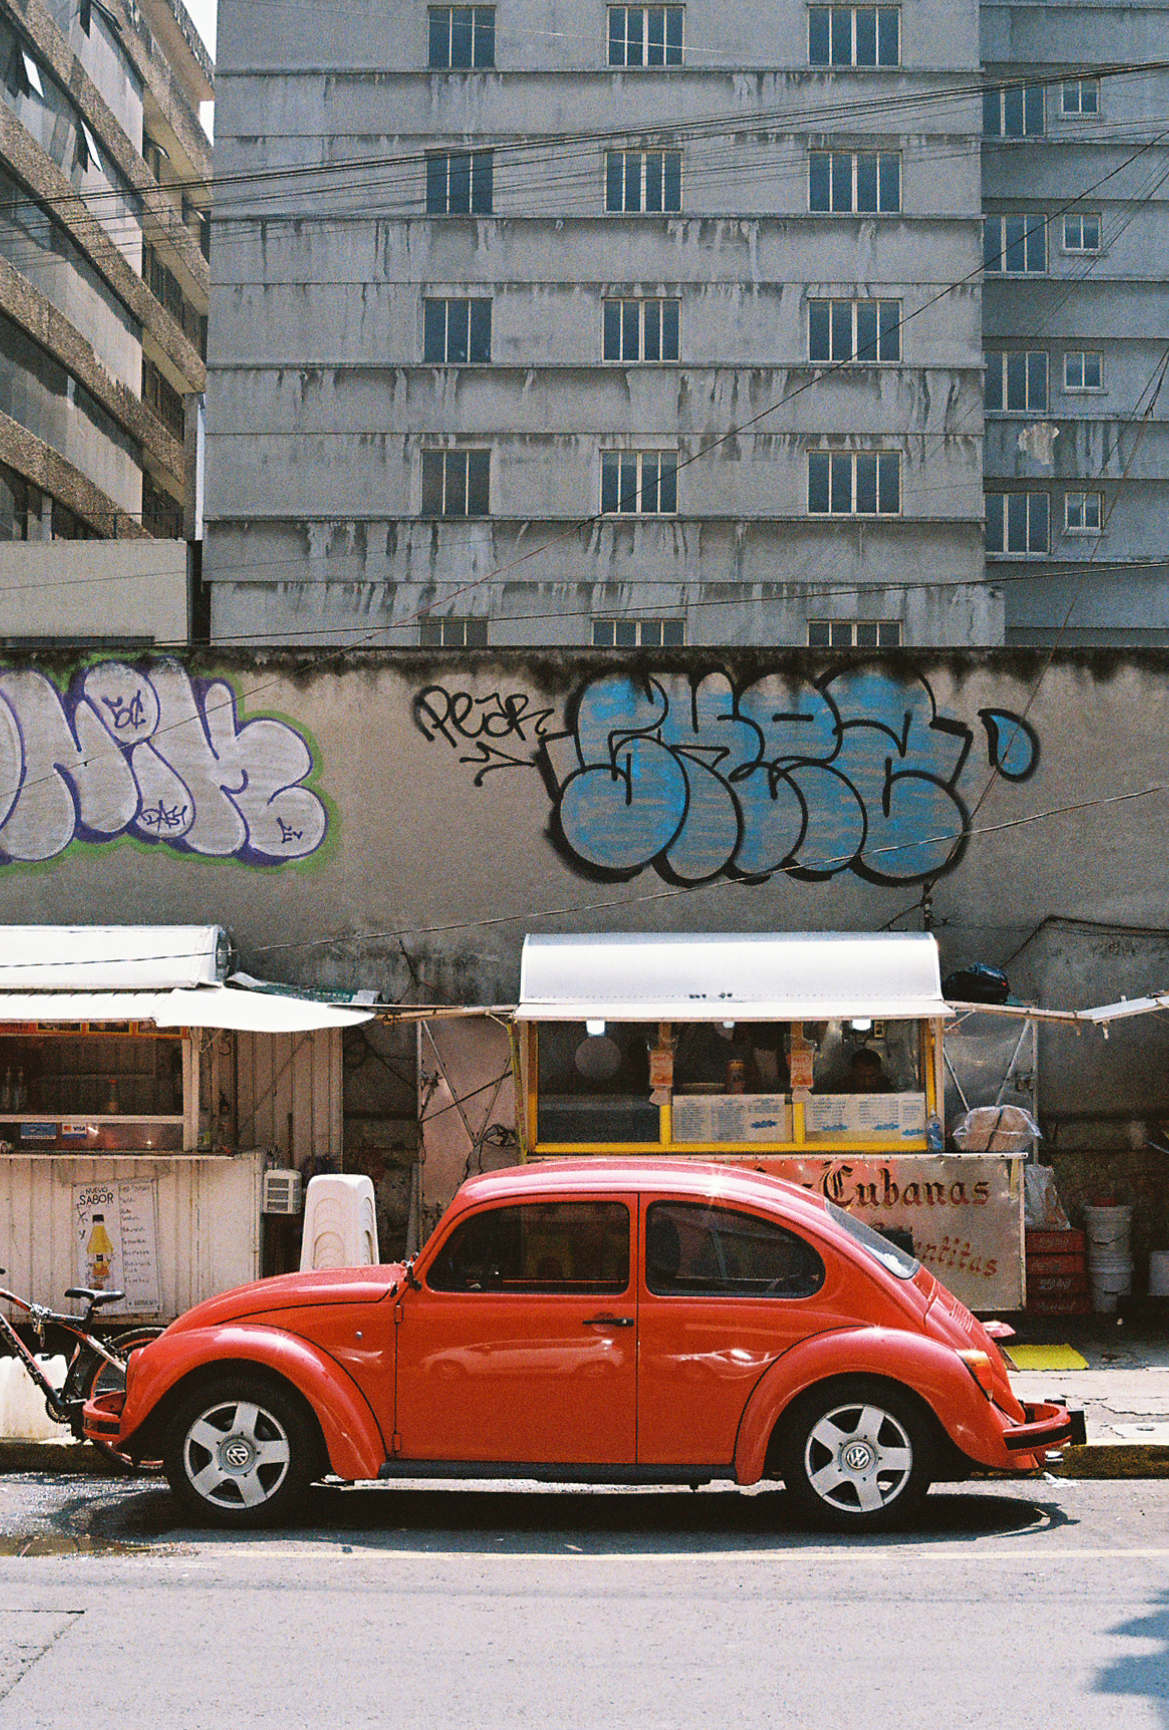 A shiny red Volkswagen Beetle, or bug, in front of some food stands and grey apartment buildings. Mexico City. Photographer Nick Barry.